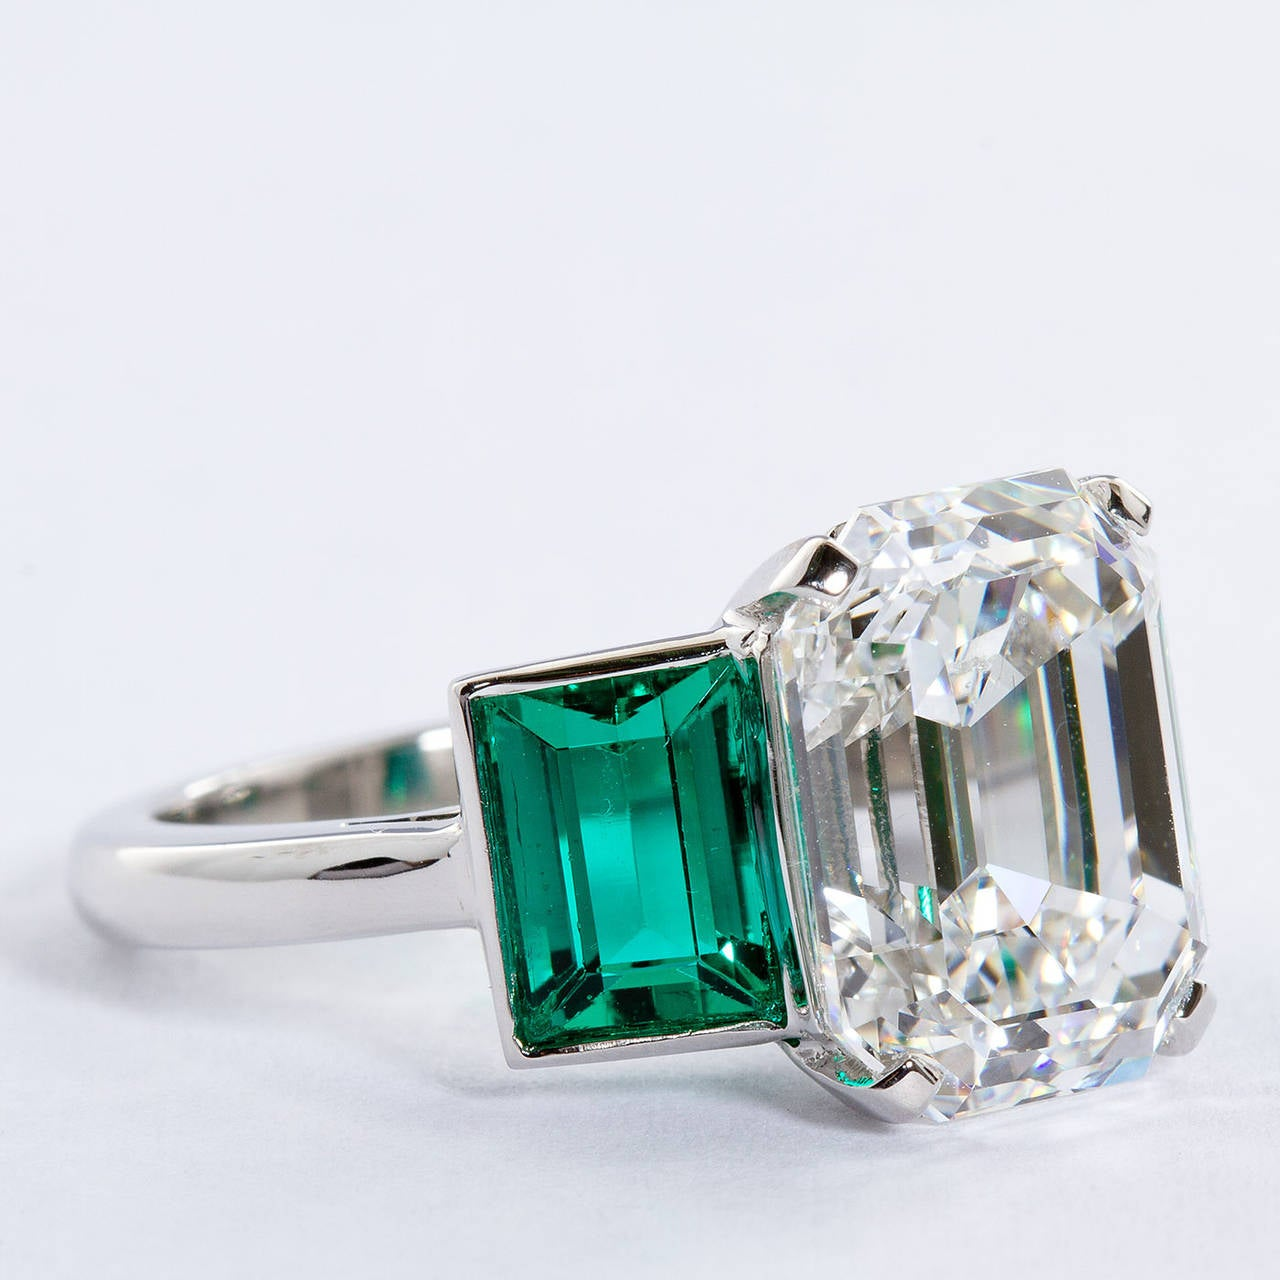 crop winston ring false stone shop stones harry cut rings emerald product baguette with platinum scale side in classic upscale diamond engagement tapered subsampling